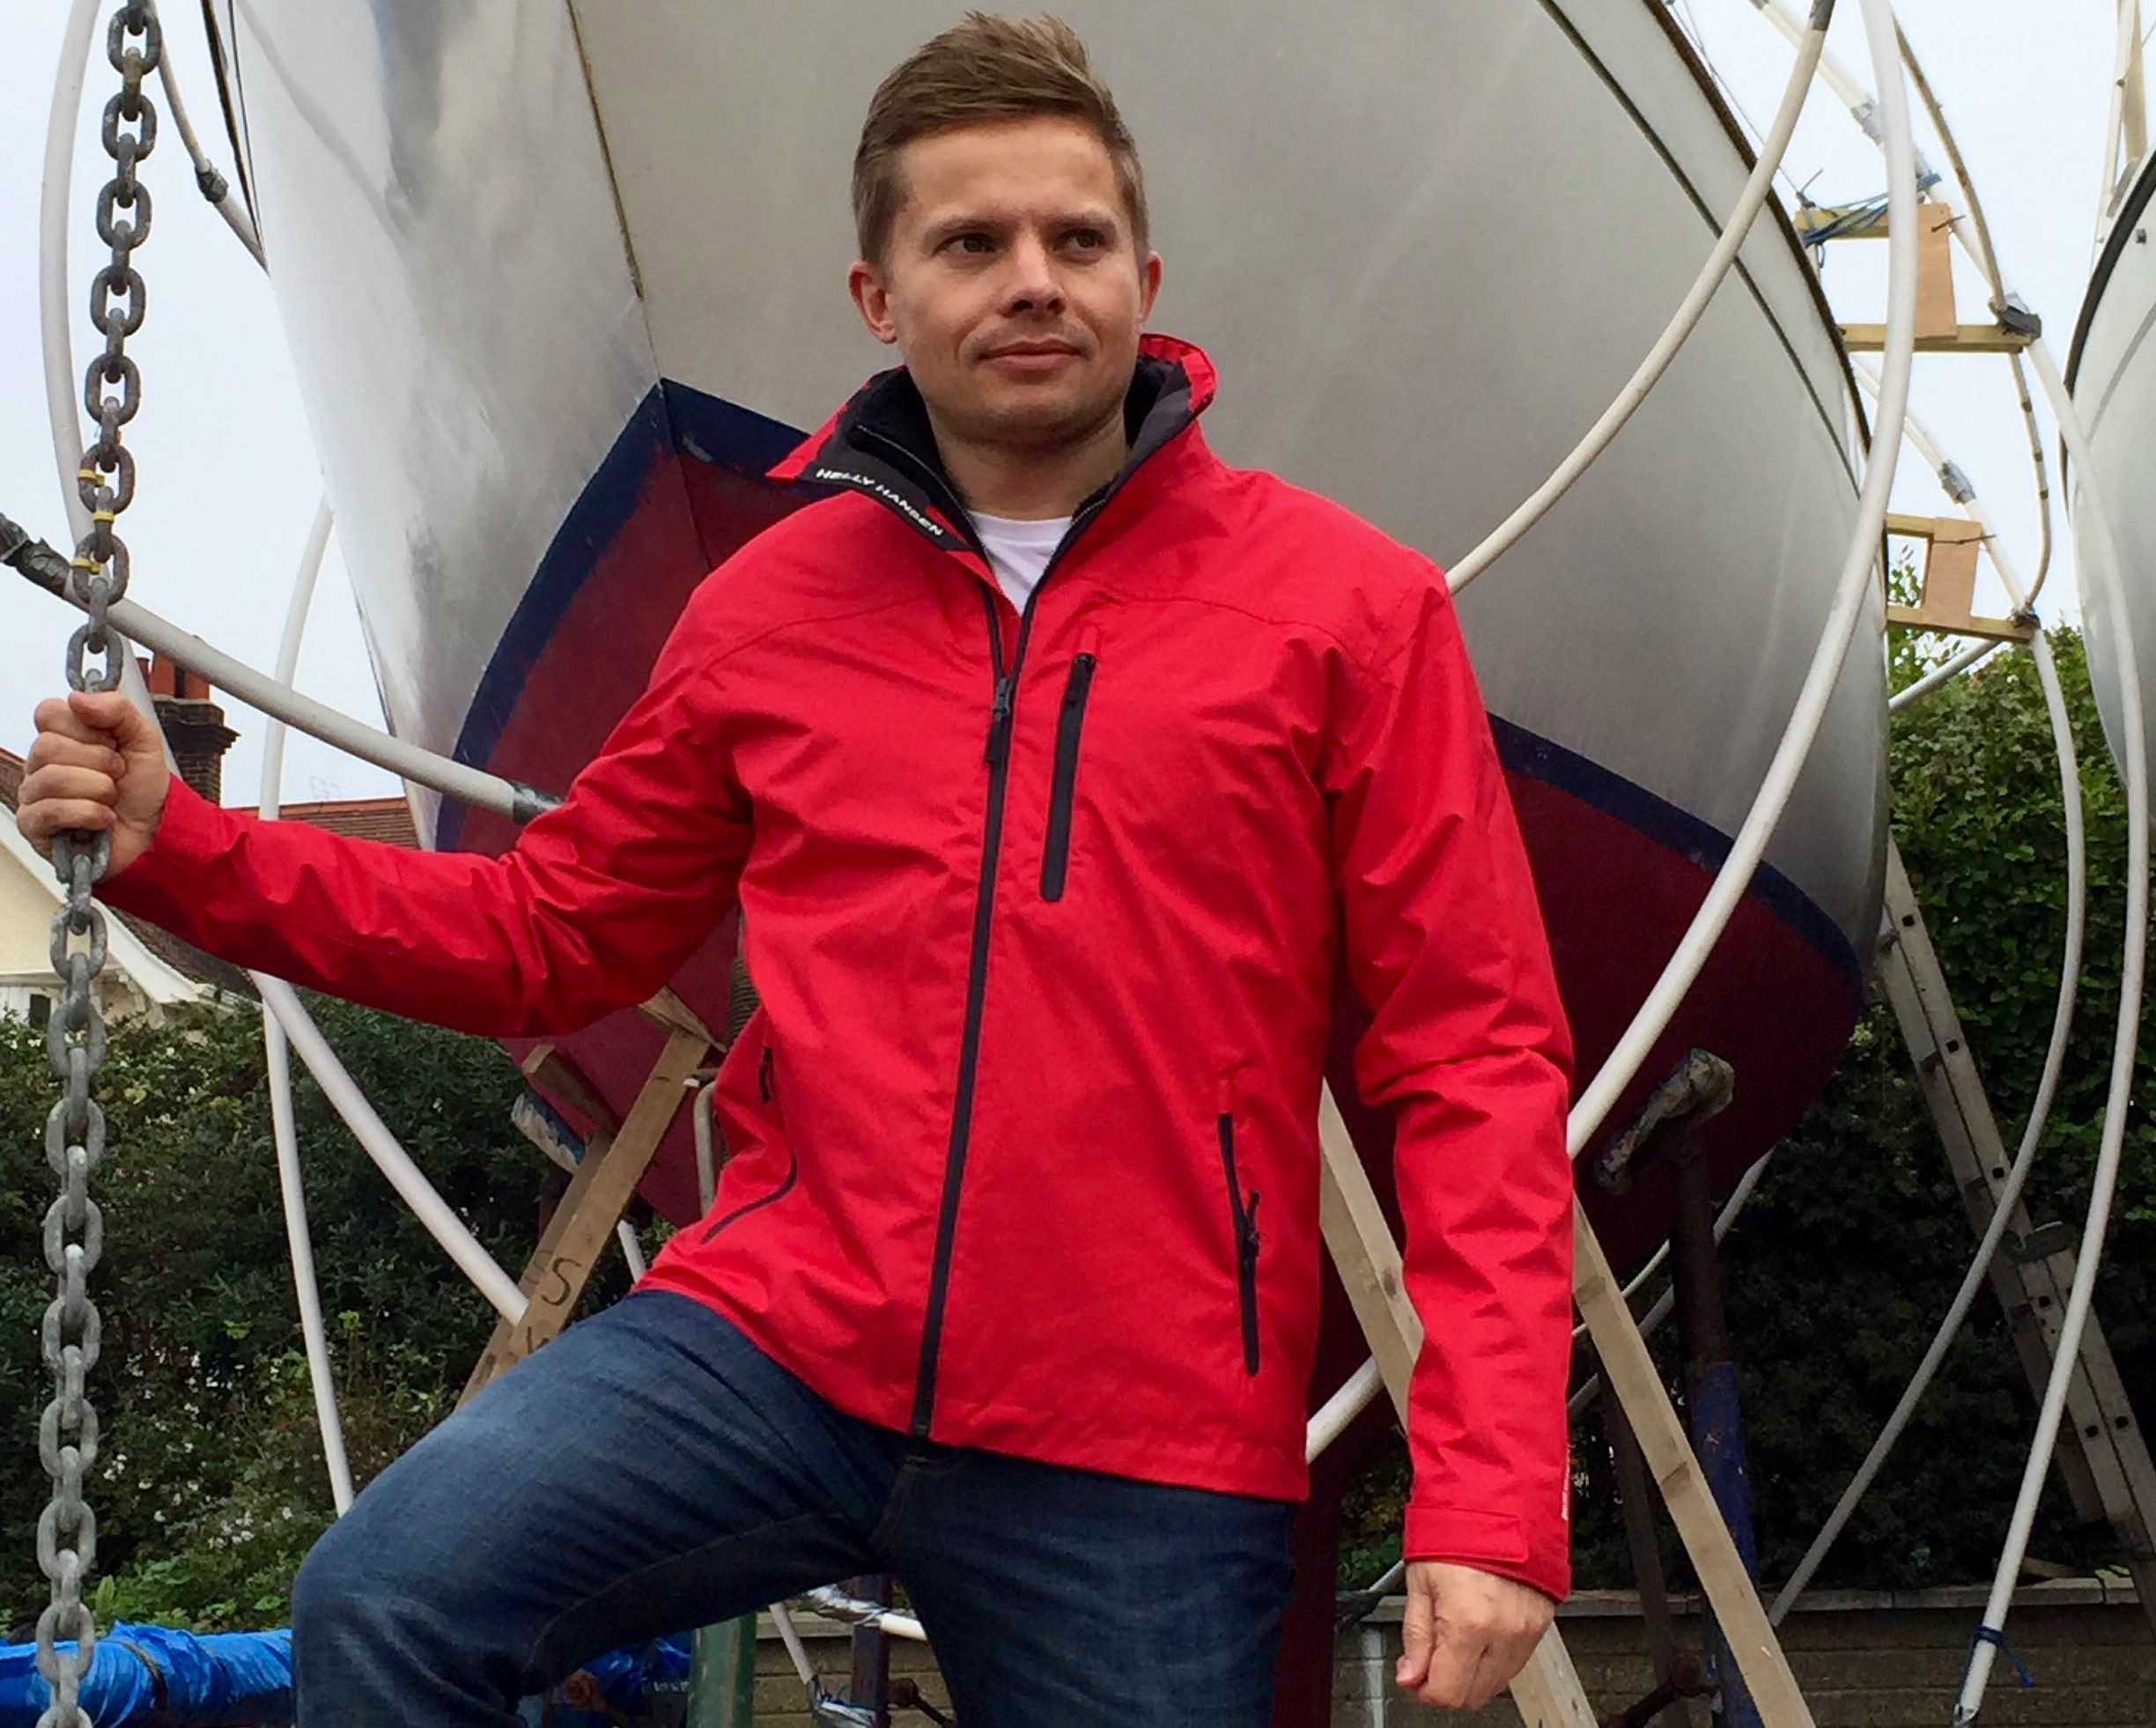 Helly Hansen Crew Jacket For Those Superyacht Sundays